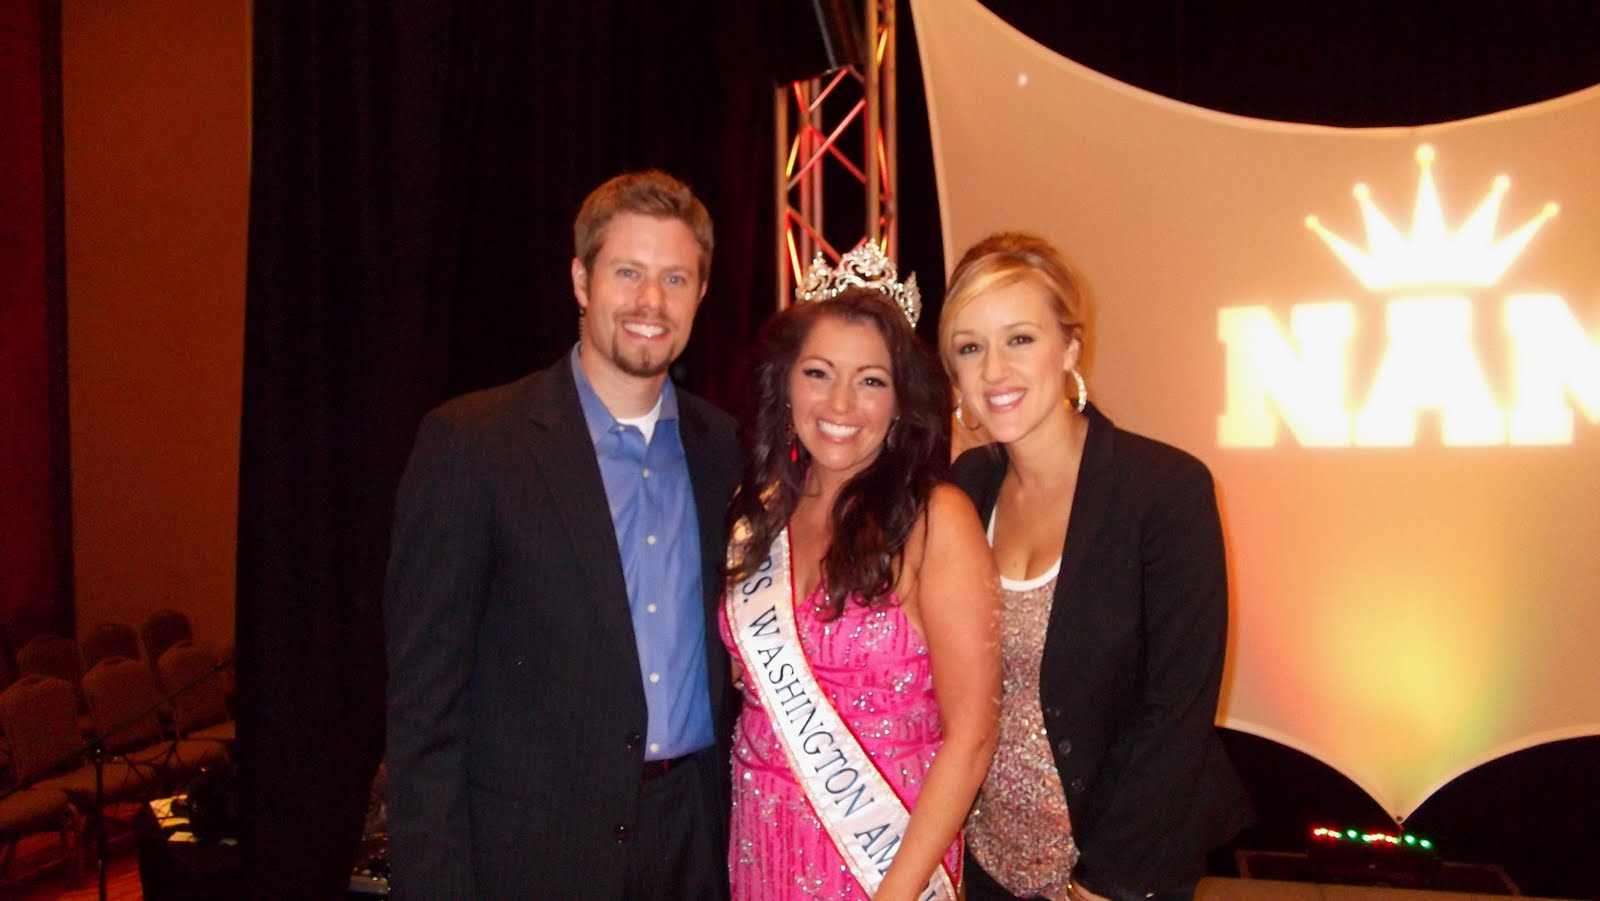 mrs washington national american miss pageant sept rd th mrs washington nam directors brian megan cournoyer you recognize megan from inside edition she is a reporter on the show